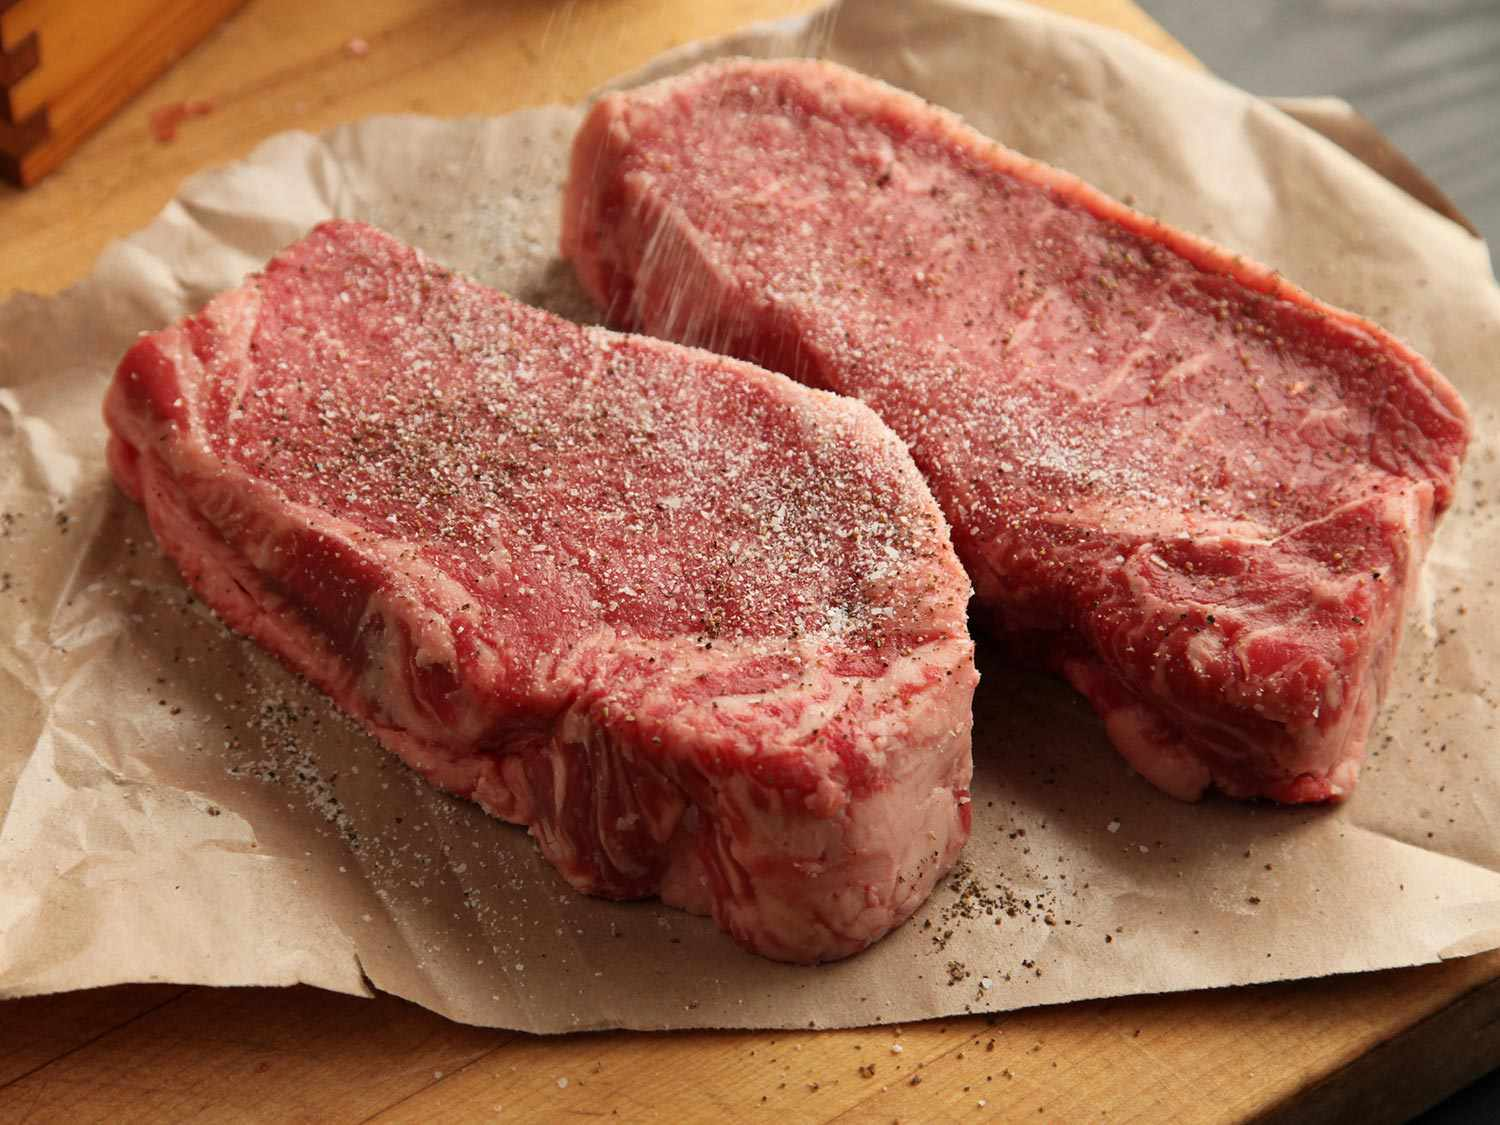 Two thick steaks seasoned with salt and pepper